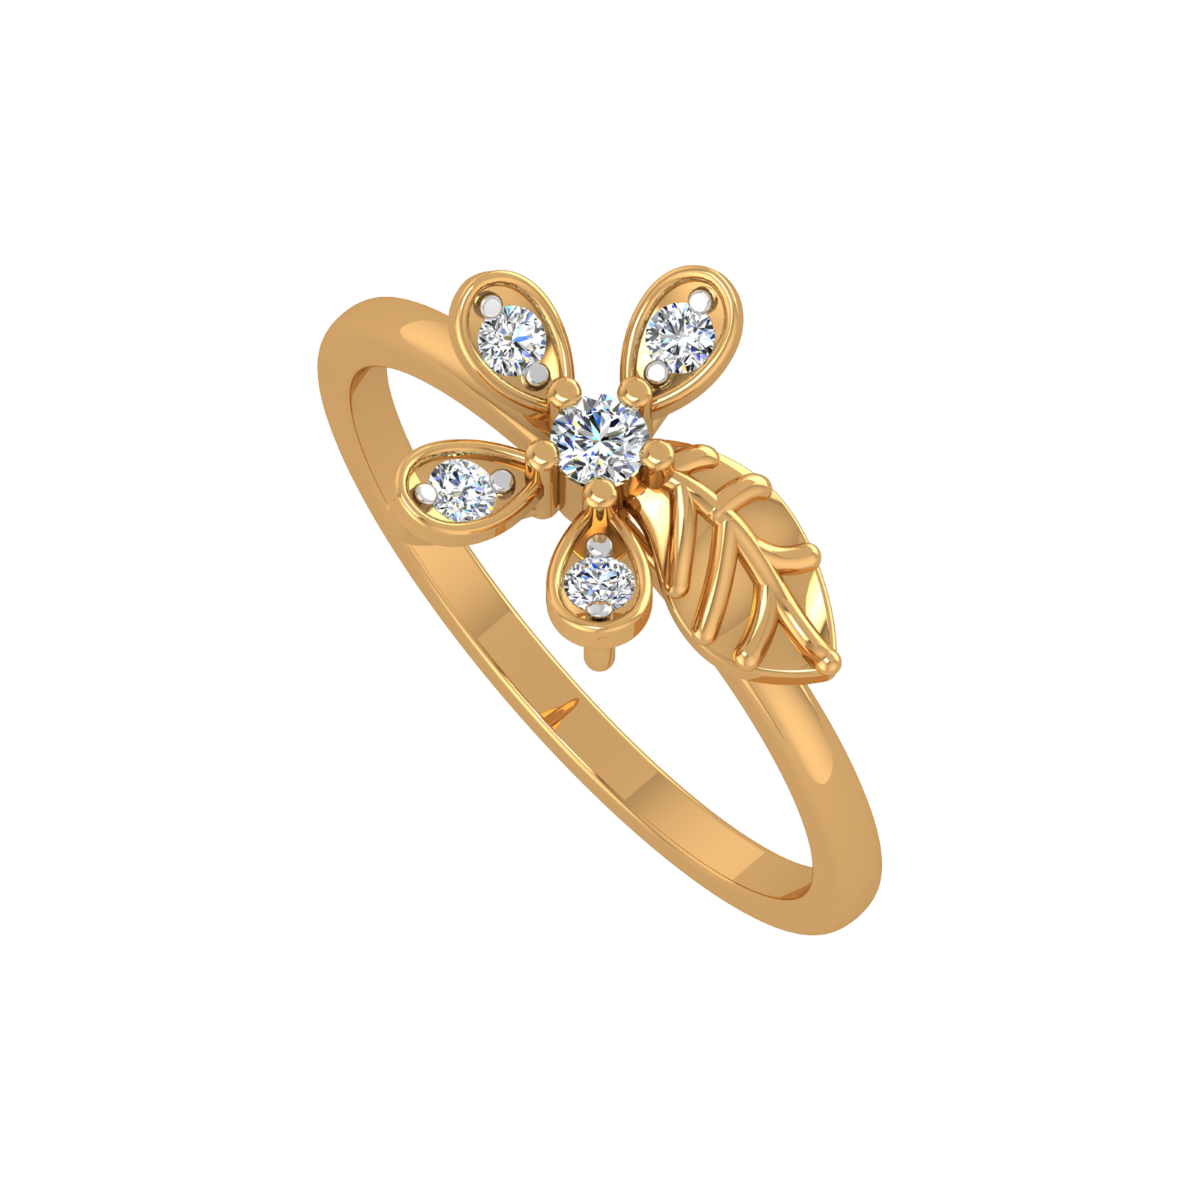 The Tropical Gold Diamond Ring